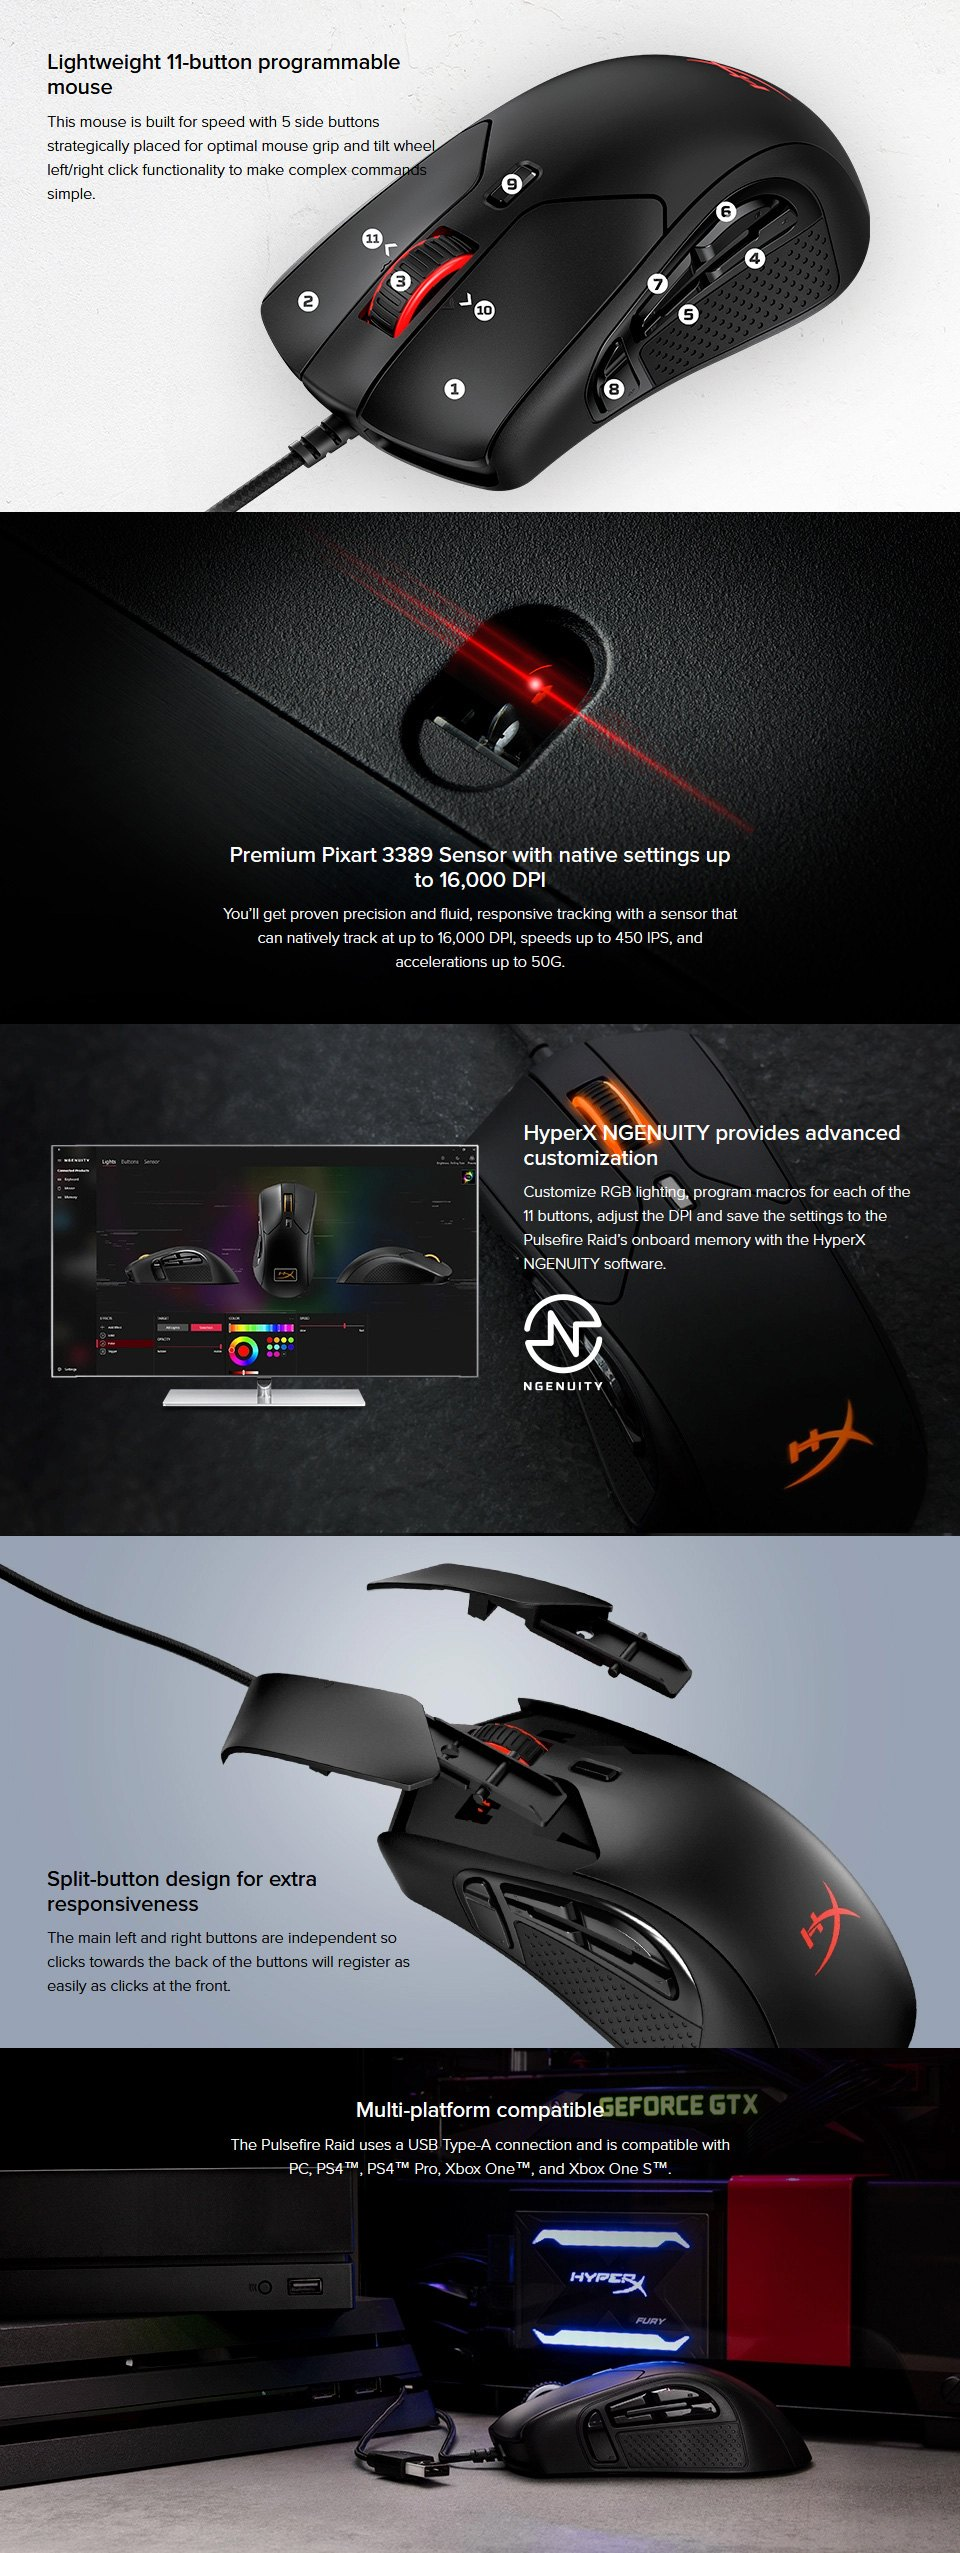 HyperX Pulsefire Raid RGB Gaming Mouse features